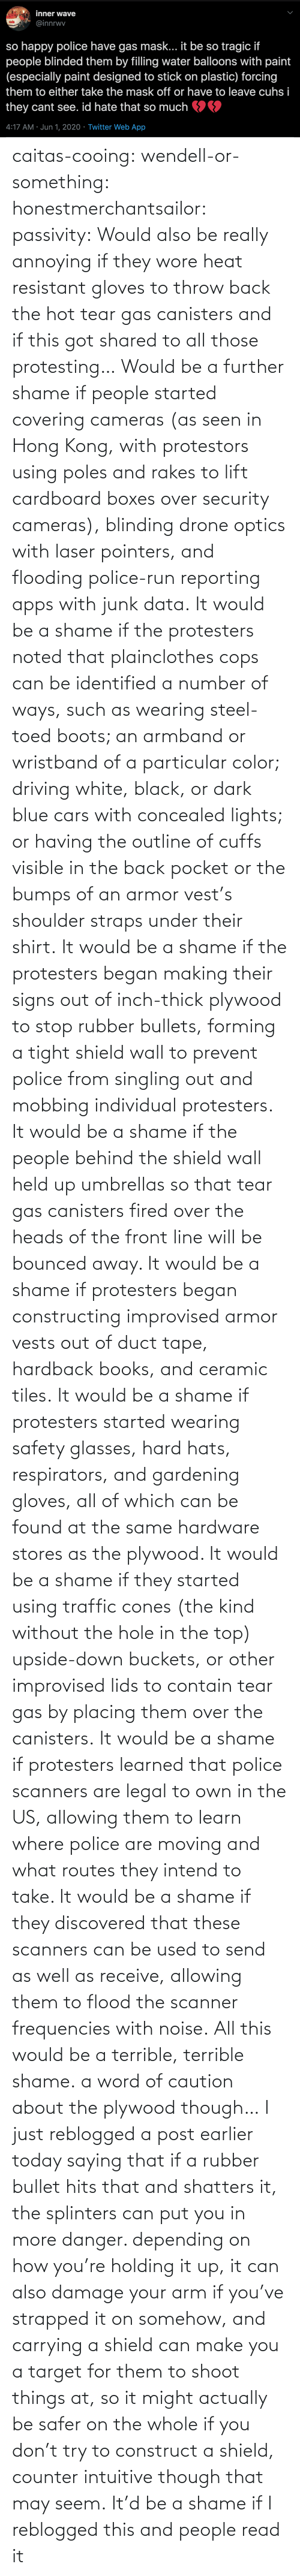 The Shield: caitas-cooing:  wendell-or-something: honestmerchantsailor:  passivity: Would also be really annoying if they wore heat resistant gloves to throw back the hot tear gas canisters and if this got shared to all those protesting… Would be a further shame if people started covering cameras (as seen in Hong Kong, with protestors using poles and rakes to lift cardboard boxes over security cameras), blinding drone optics with laser pointers, and flooding police-run reporting apps with junk data. It would be a shame if the protesters noted that plainclothes cops can be identified a number of ways, such as wearing steel-toed boots; an armband or wristband of a particular color; driving white, black, or dark blue cars with concealed lights; or having the outline of cuffs visible in the back pocket or the bumps of an armor vest's shoulder straps under their shirt. It would be a shame if the protesters began making their signs out of inch-thick plywood to stop rubber bullets, forming a tight shield wall to prevent police from singling out and mobbing individual protesters. It would be a shame if the people behind the shield wall held up umbrellas so that tear gas canisters fired over the heads of the front line will be bounced away. It would be a shame if protesters began constructing improvised armor vests out of duct tape, hardback books, and ceramic tiles. It would be a shame if protesters started wearing safety glasses, hard hats, respirators, and gardening gloves, all of which can be found at the same hardware stores as the plywood. It would be a shame if they started using traffic cones (the kind without the hole in the top) upside-down buckets, or other improvised lids to contain tear gas by placing them over the canisters. It would be a shame if protesters learned that police scanners are legal to own in the US, allowing them to learn where police are moving and what routes they intend to take. It would be a shame if they discovered that these scanners can be used to send as well as receive, allowing them to flood the scanner frequencies with noise. All this would be a terrible, terrible shame.    a word of caution about the plywood though… I just reblogged a post earlier today saying that if a rubber bullet hits that and shatters it, the splinters can put you in more danger. depending on how you're holding it up, it can also damage your arm if you've strapped it on somehow, and carrying a shield can make you a target for them to shoot things at, so it might actually be safer on the whole if you don't try to construct a shield, counter intuitive though that may seem.    It'd be a shame if I reblogged this and people read it